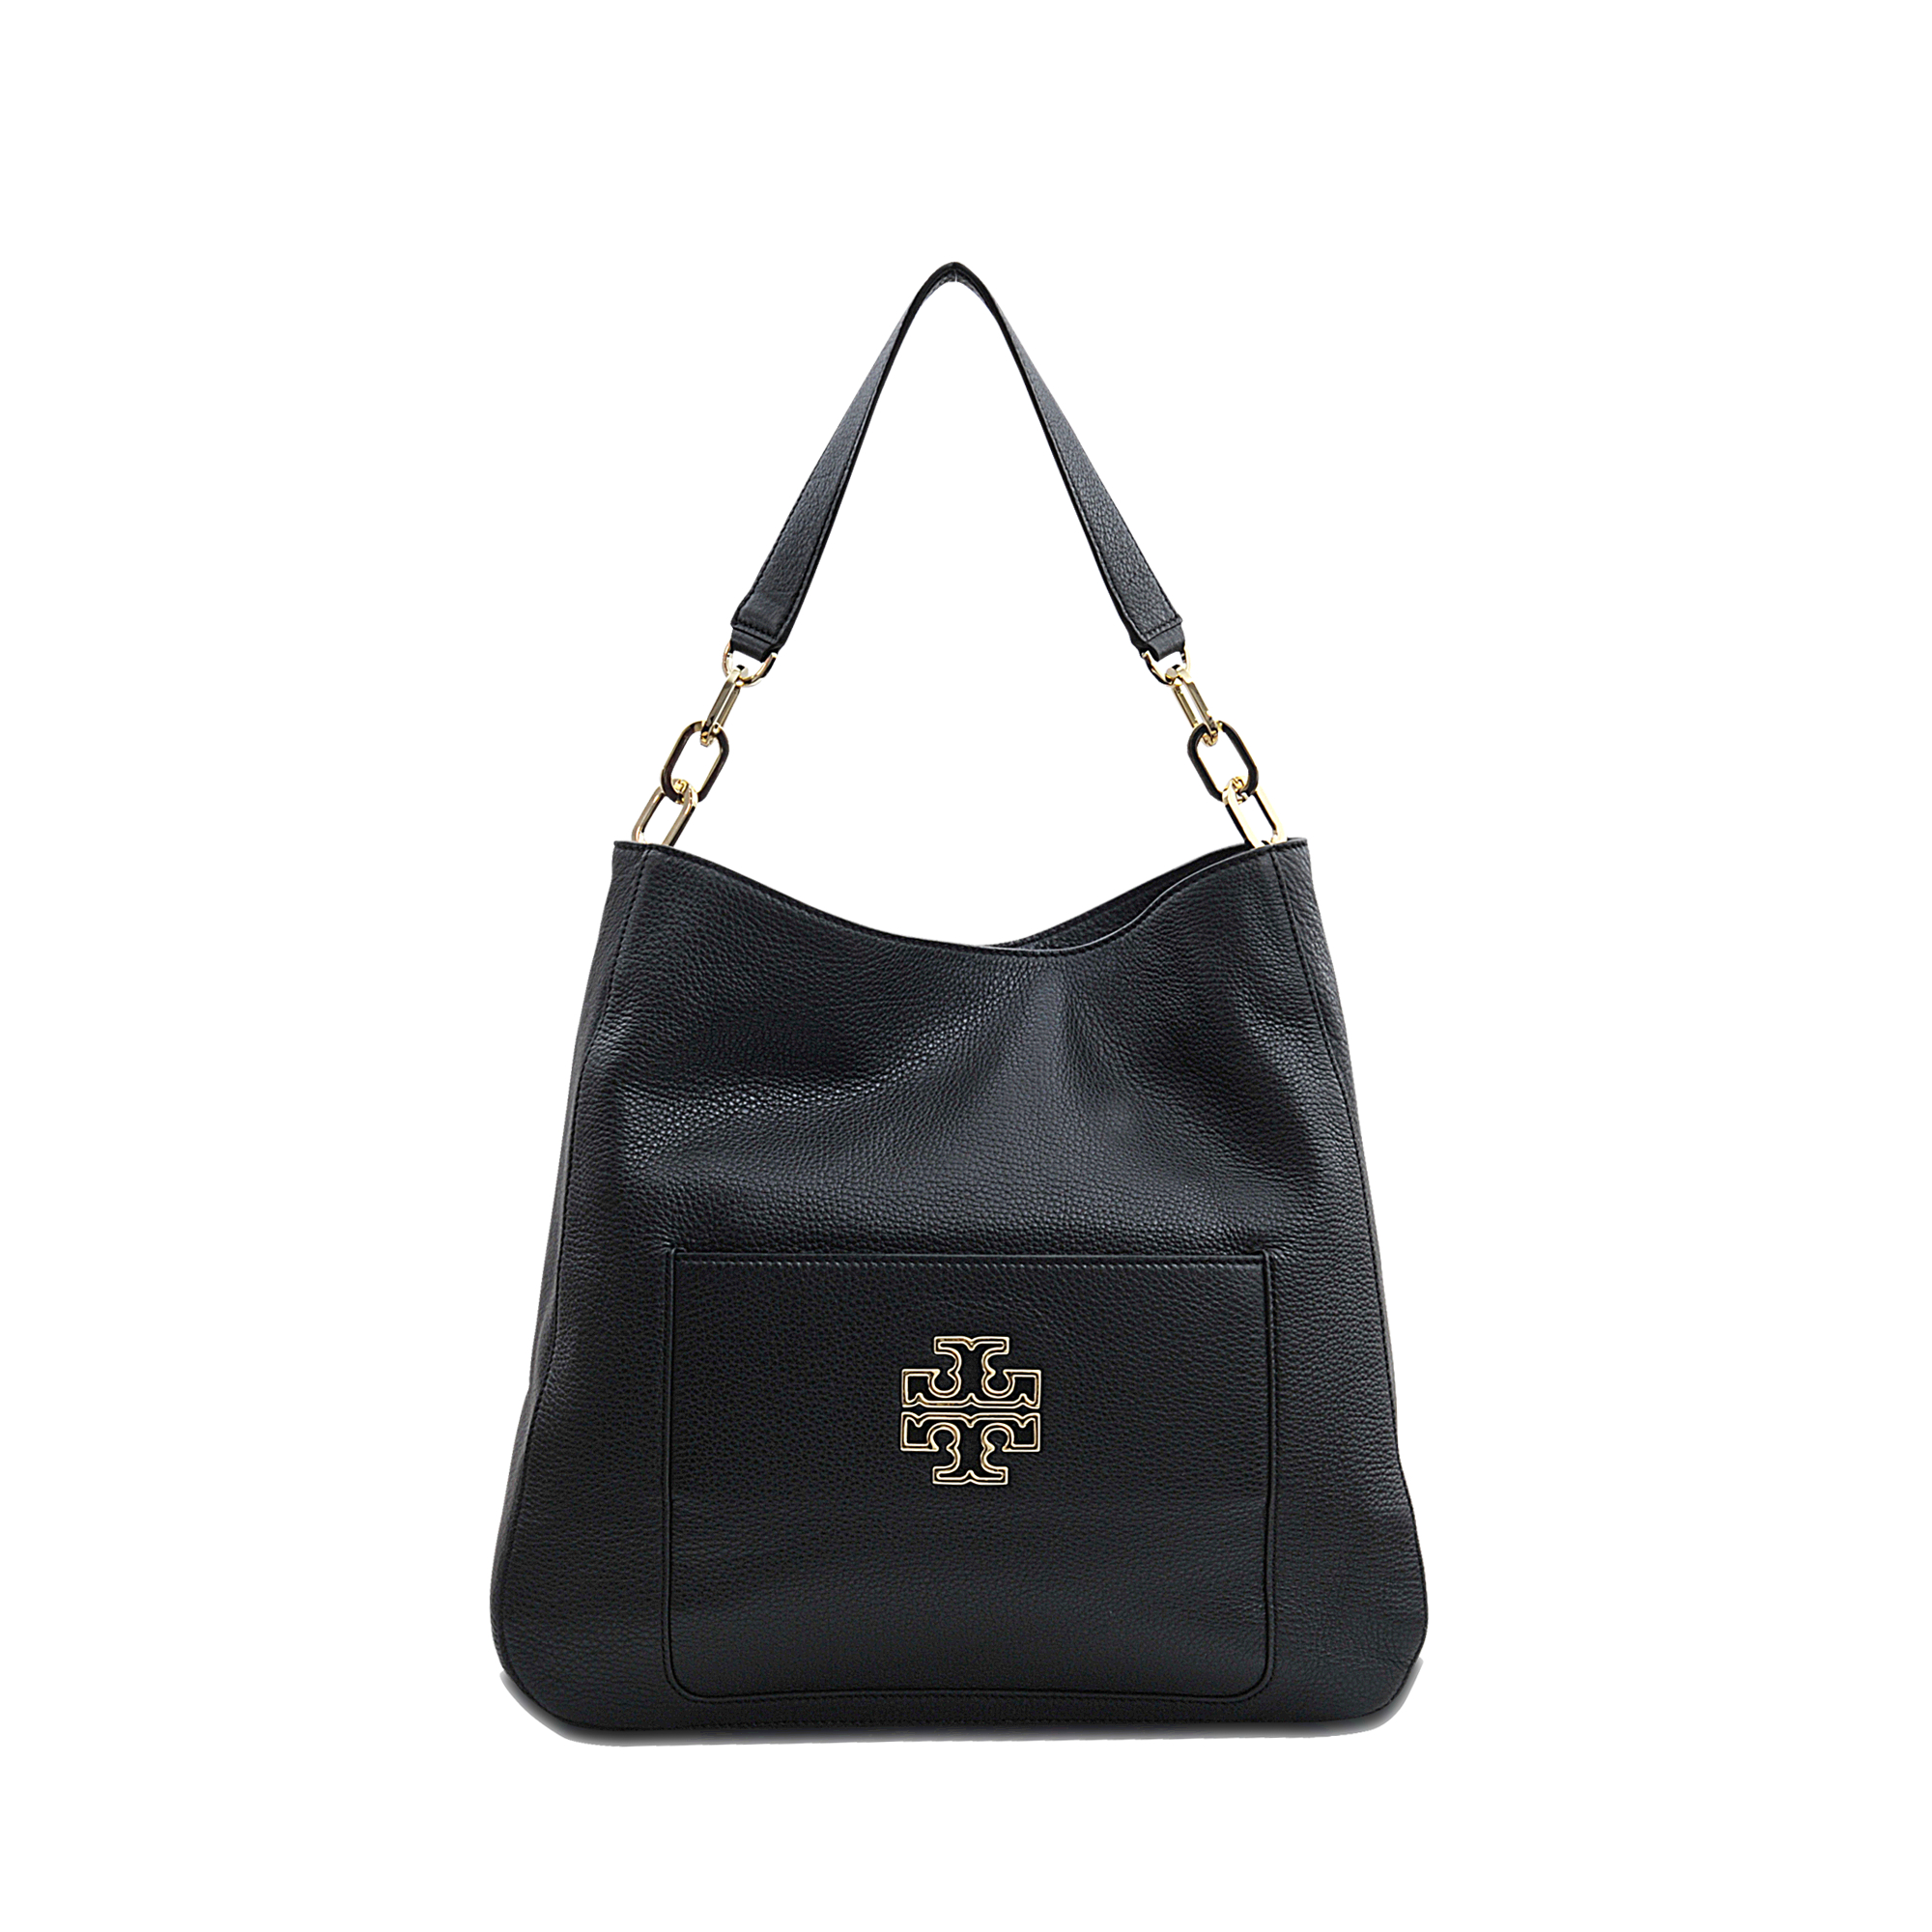 7197d6bbdec Lyst - Tory Burch Britten Hobo Bag in Black